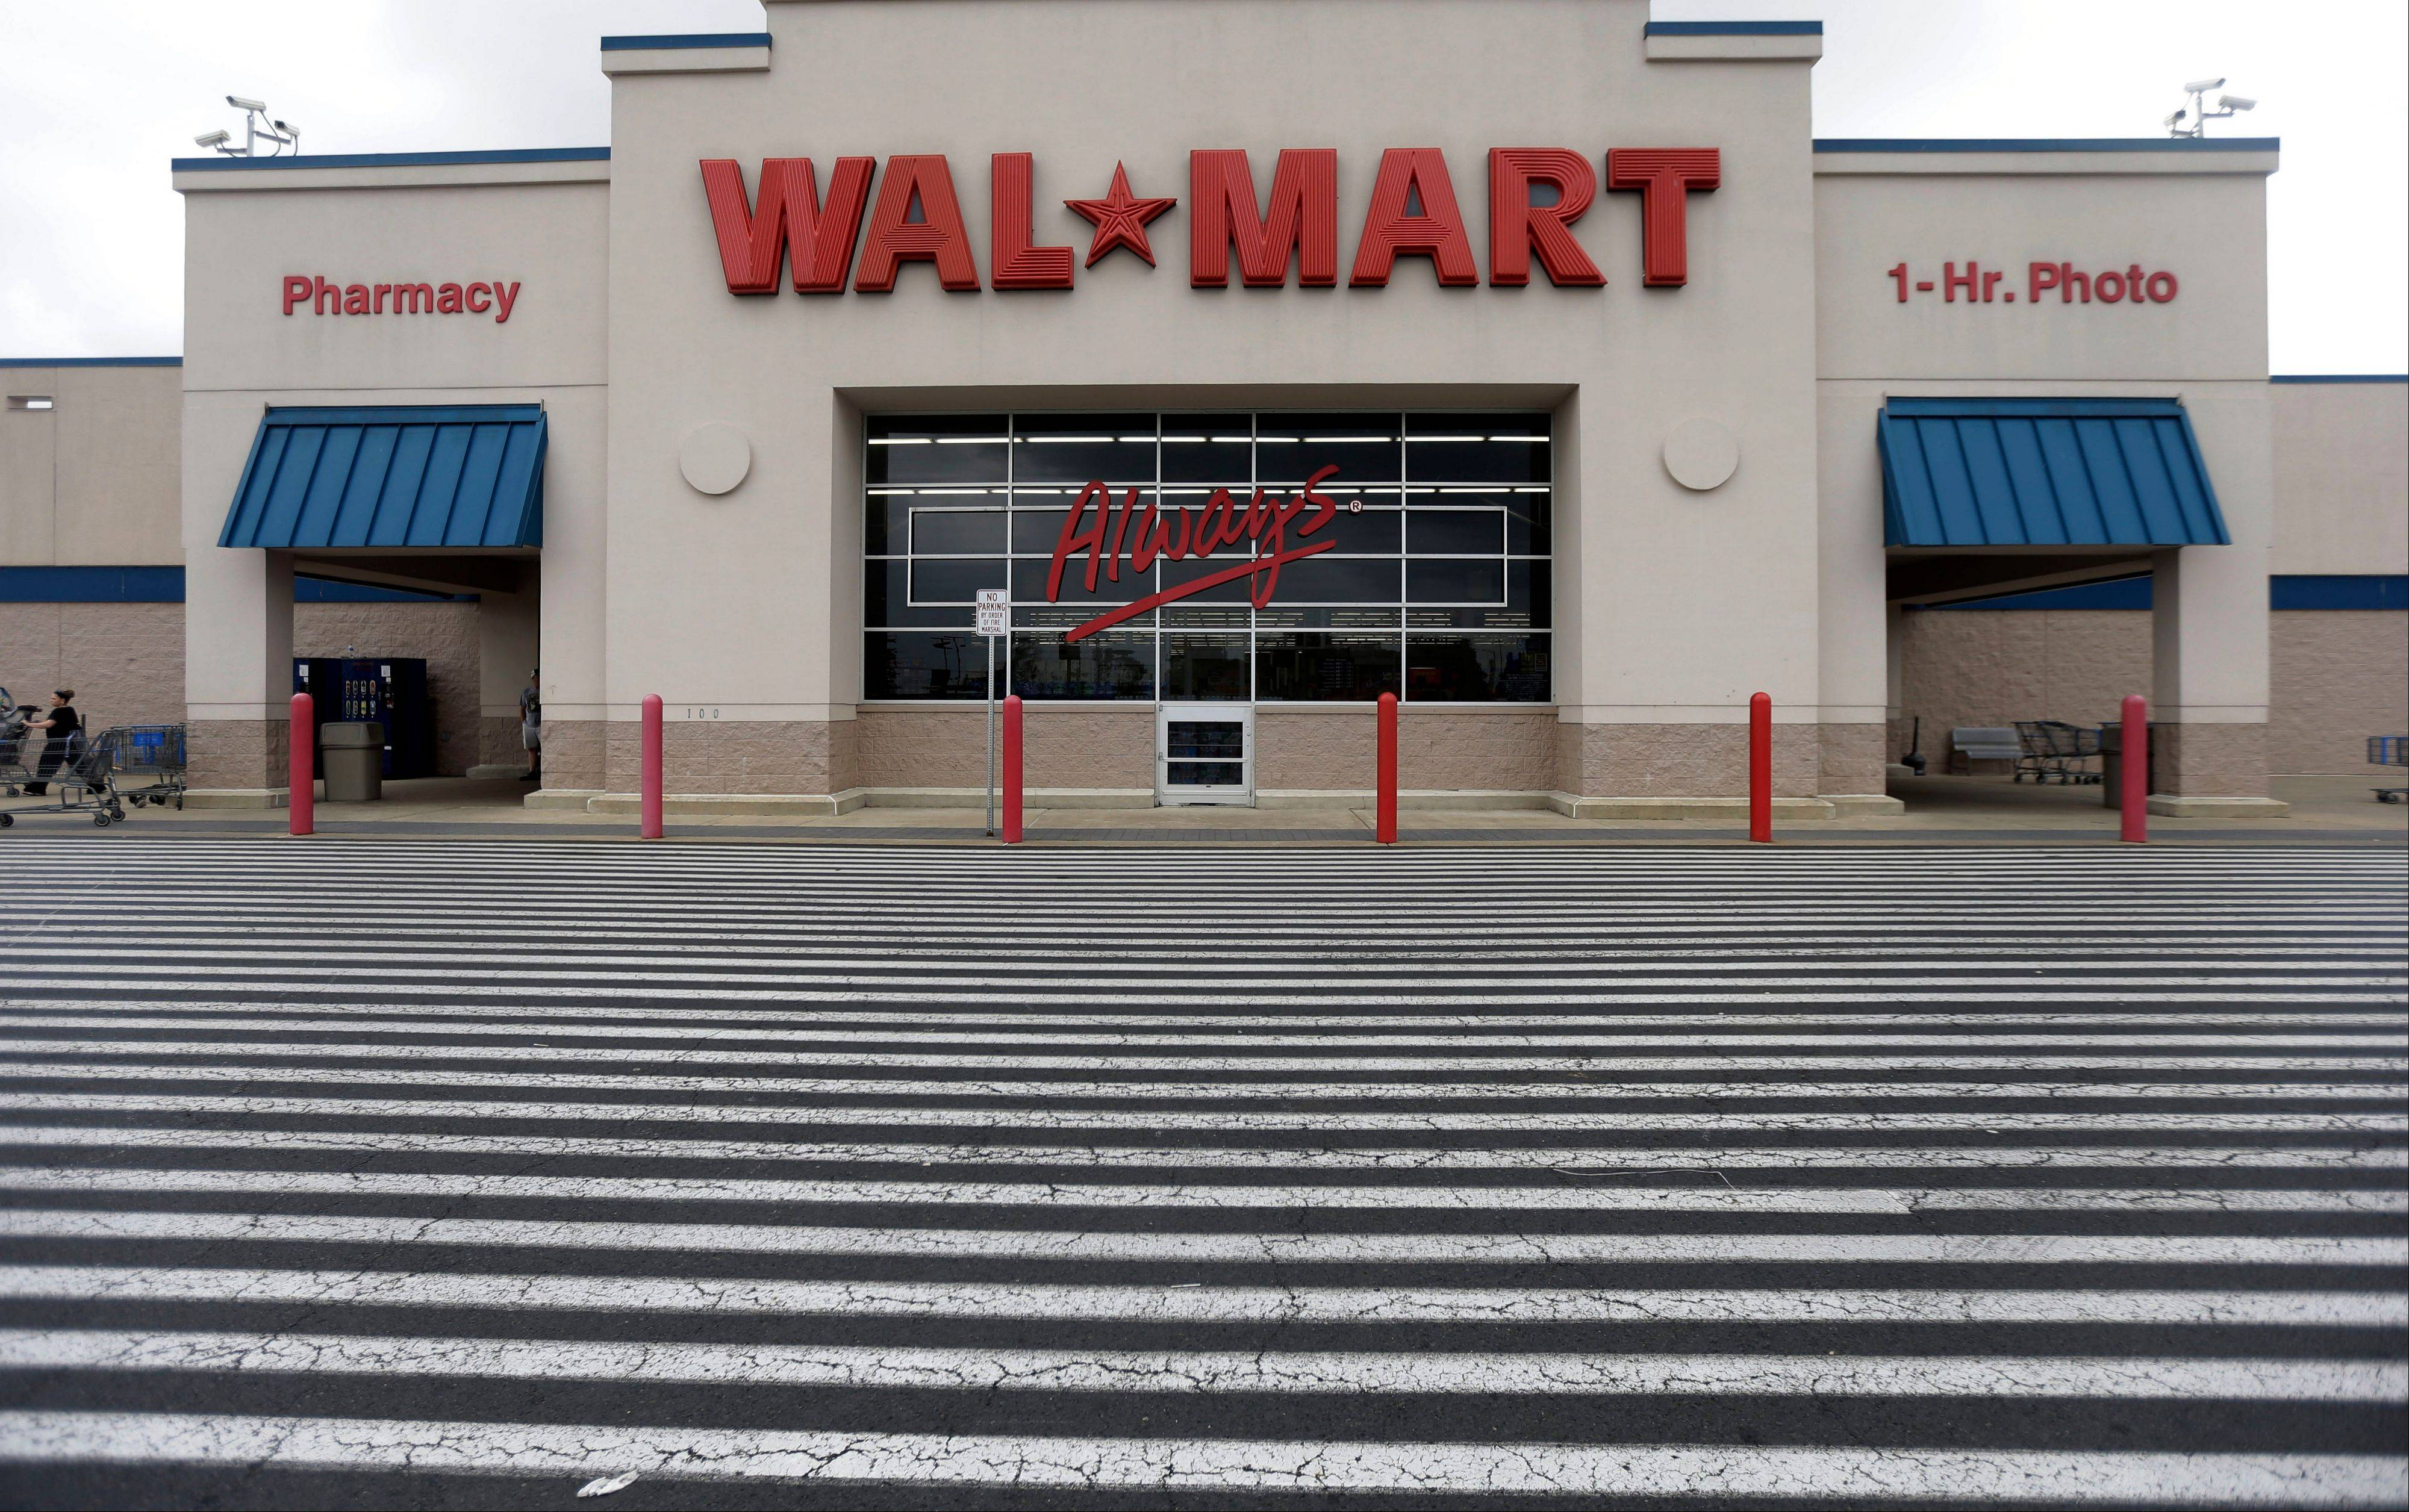 Wal-Mart Stores Inc. says that its third-quarter profit rose 2.8 percent, but the world's largest retailer reported a sales shortfall as its low-income shoppers feel squeezed around the globe. The discounter also cut its outlook for the full year and issued fourth-quarter profit guidance that was below analysts' projections.